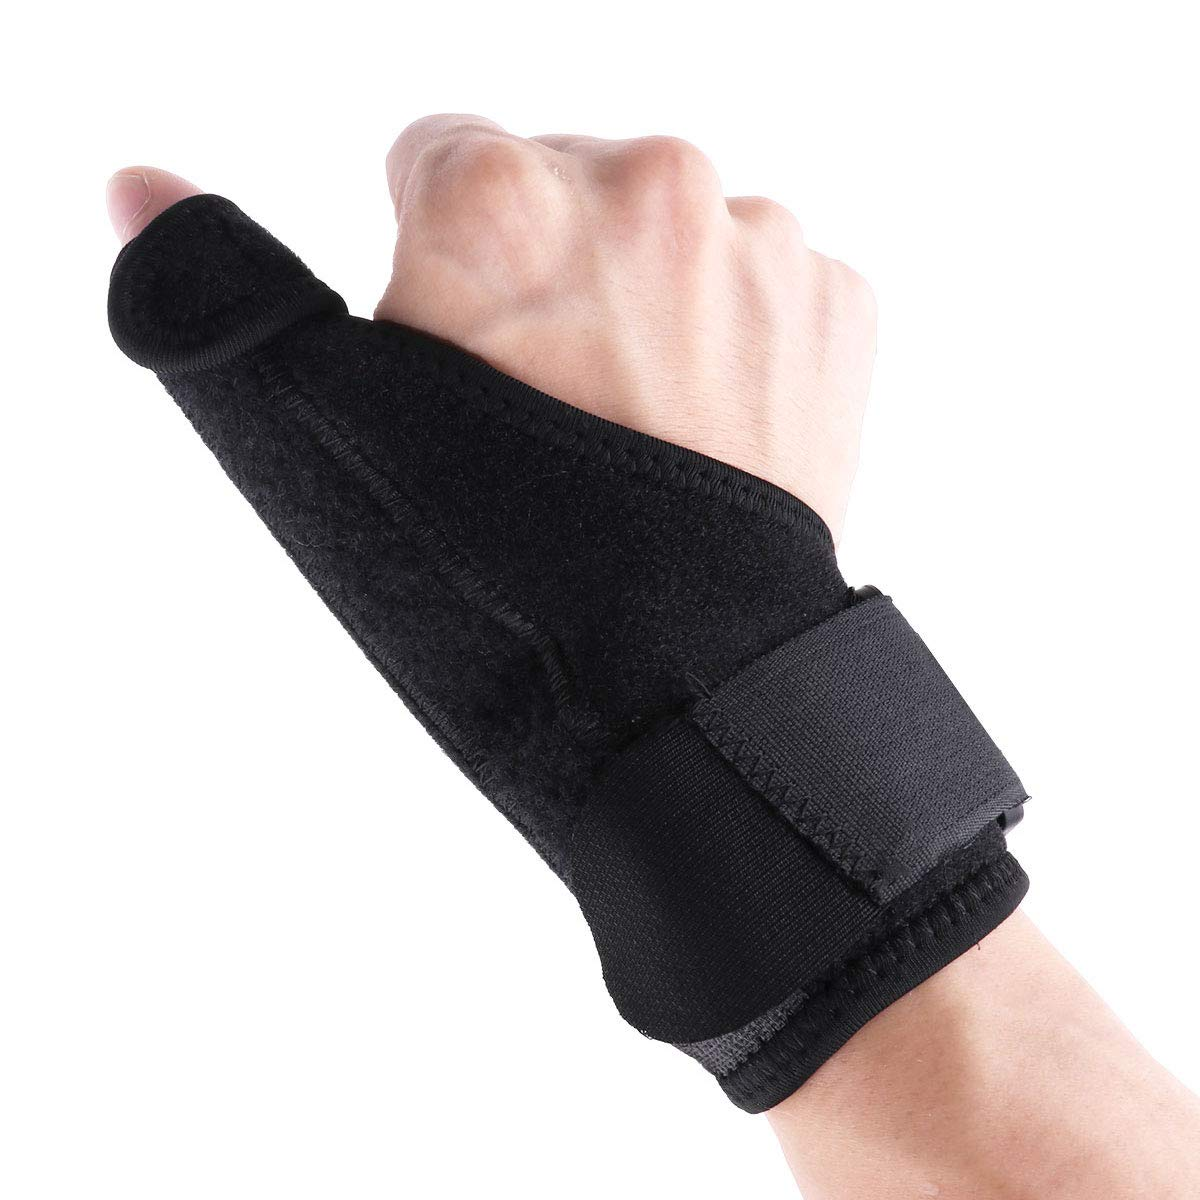 Freebily Hand Thumb Splint Wrap Guard Breathable Thumb Spica Wrist Support Brace for Arthritis De Quervains Carpal Tunnel Pain Relief Right Hand One Size